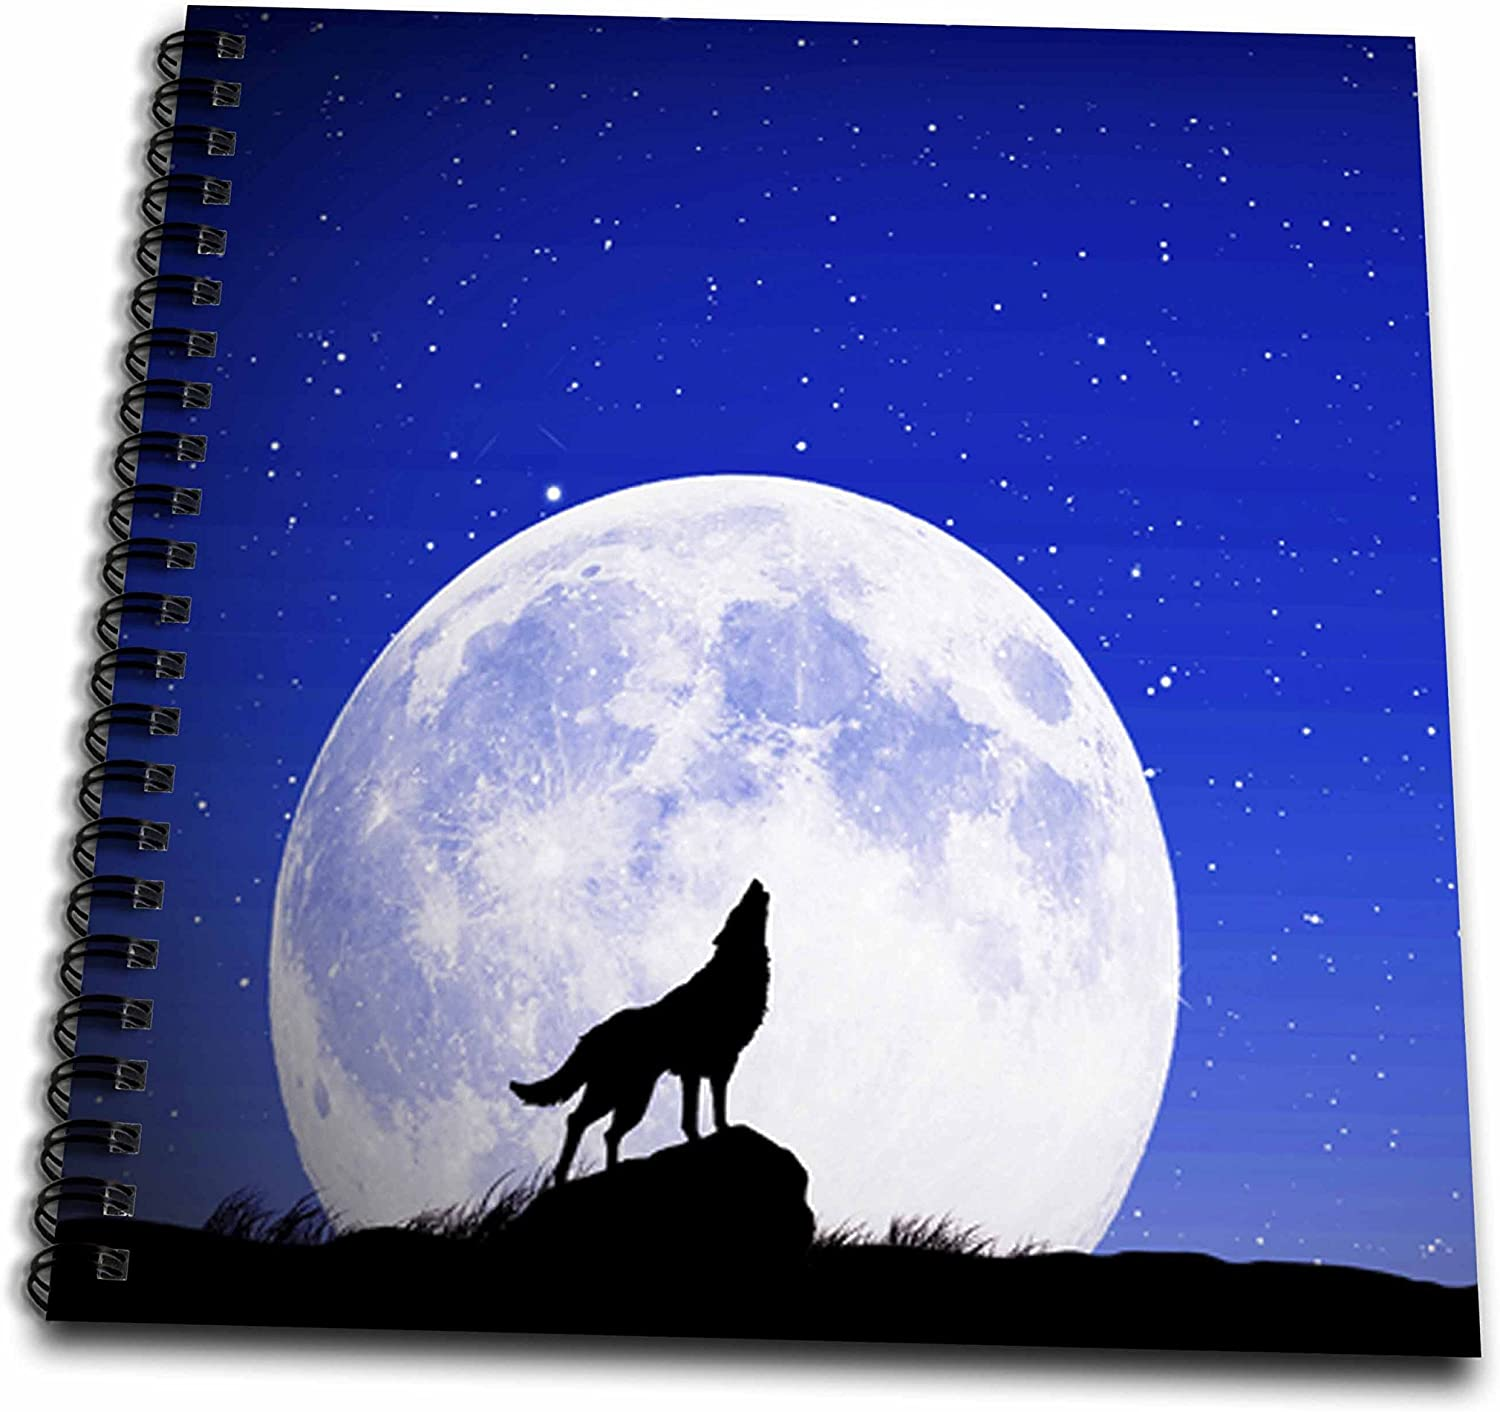 3drose Sven Herkenrath Animal Silhouette Of A Wolf Howling At The Moon Drawing Book 8 X 8 Inch Db 286416 1 Amazon Ca Home Kitchen